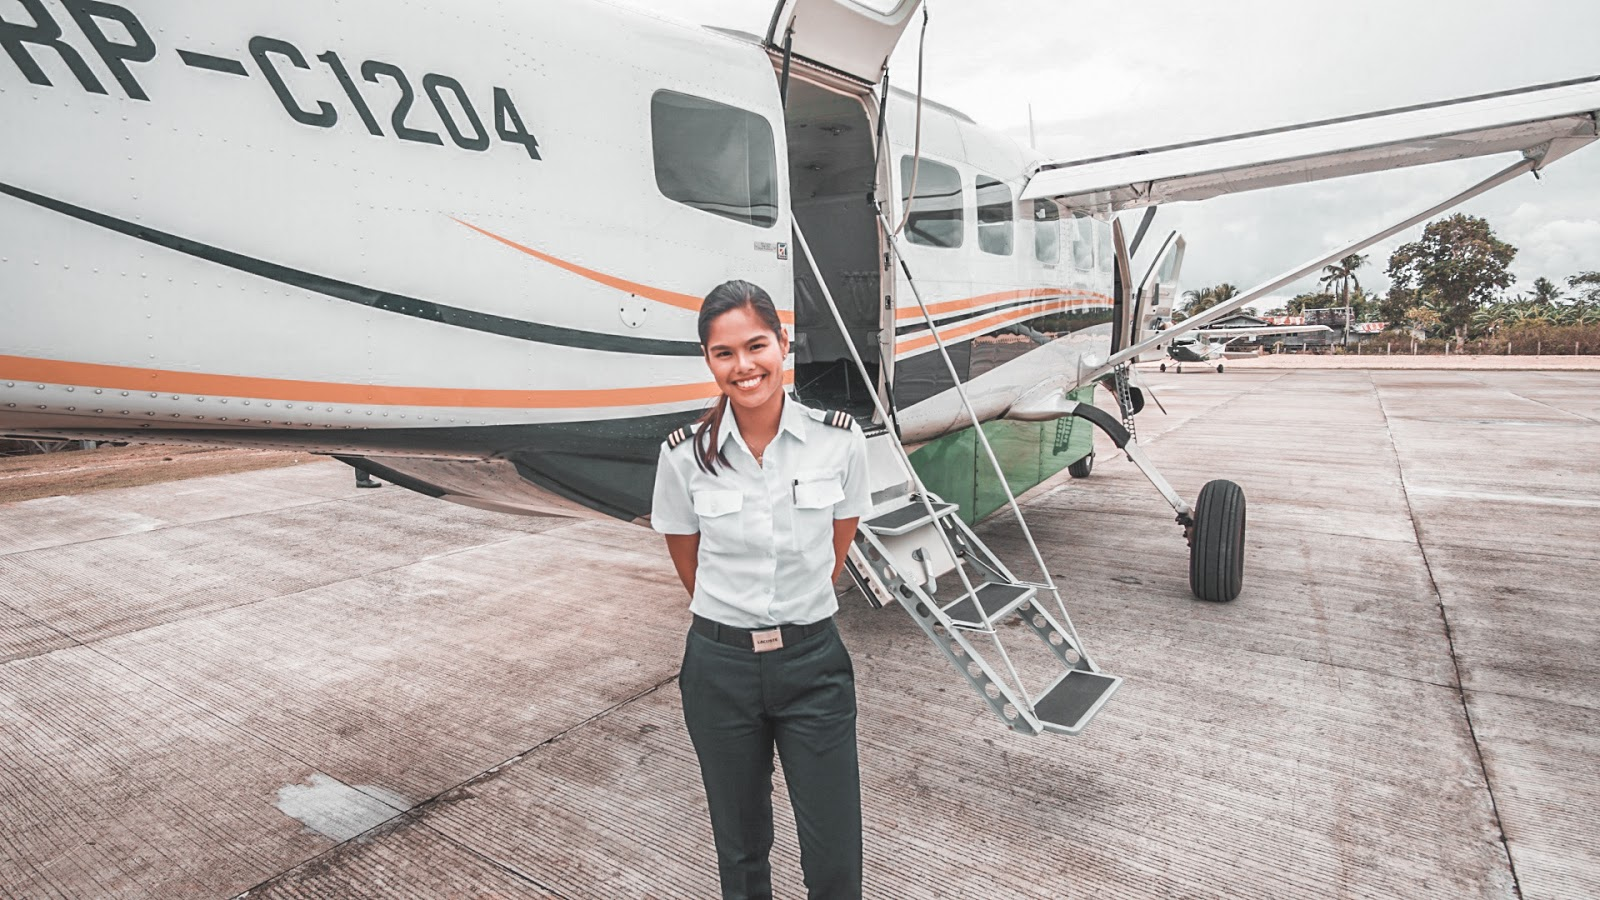 Chezka loves flying and is definitely an inspiration to many female pilots  around the world. Read her answers to our questions below.